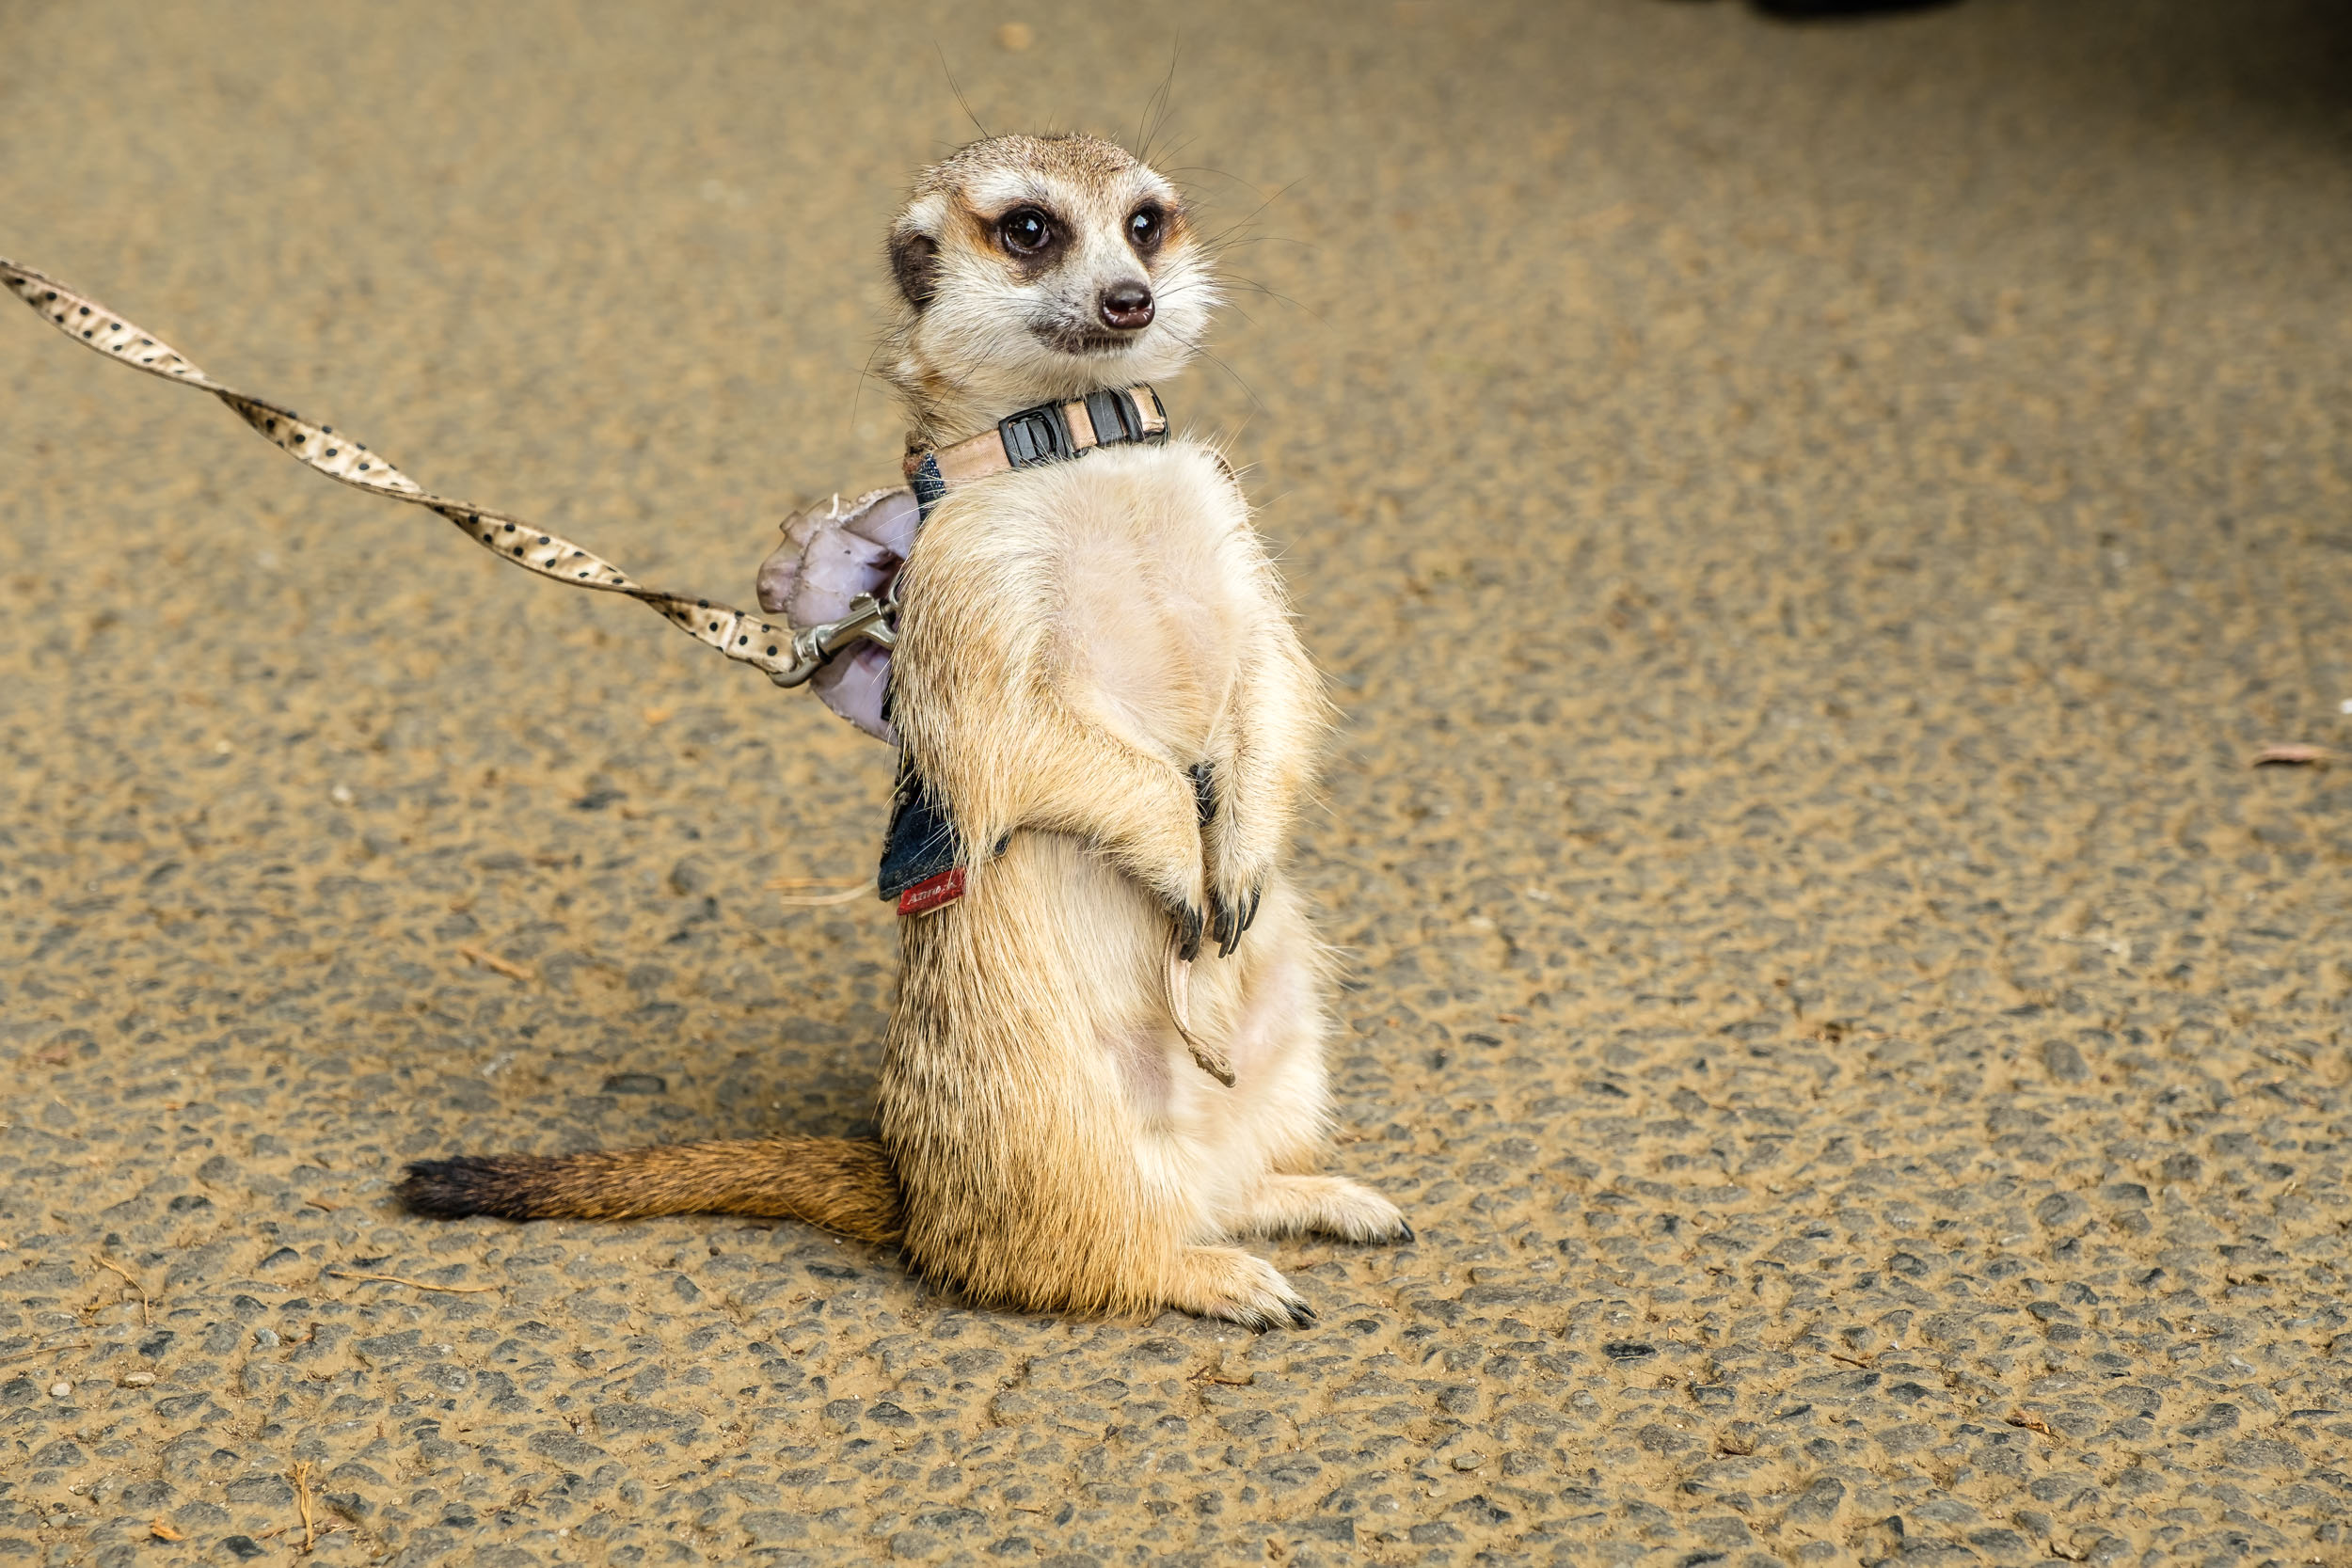 Meerkat in Yoyogi park which pulled a huge crowd of people